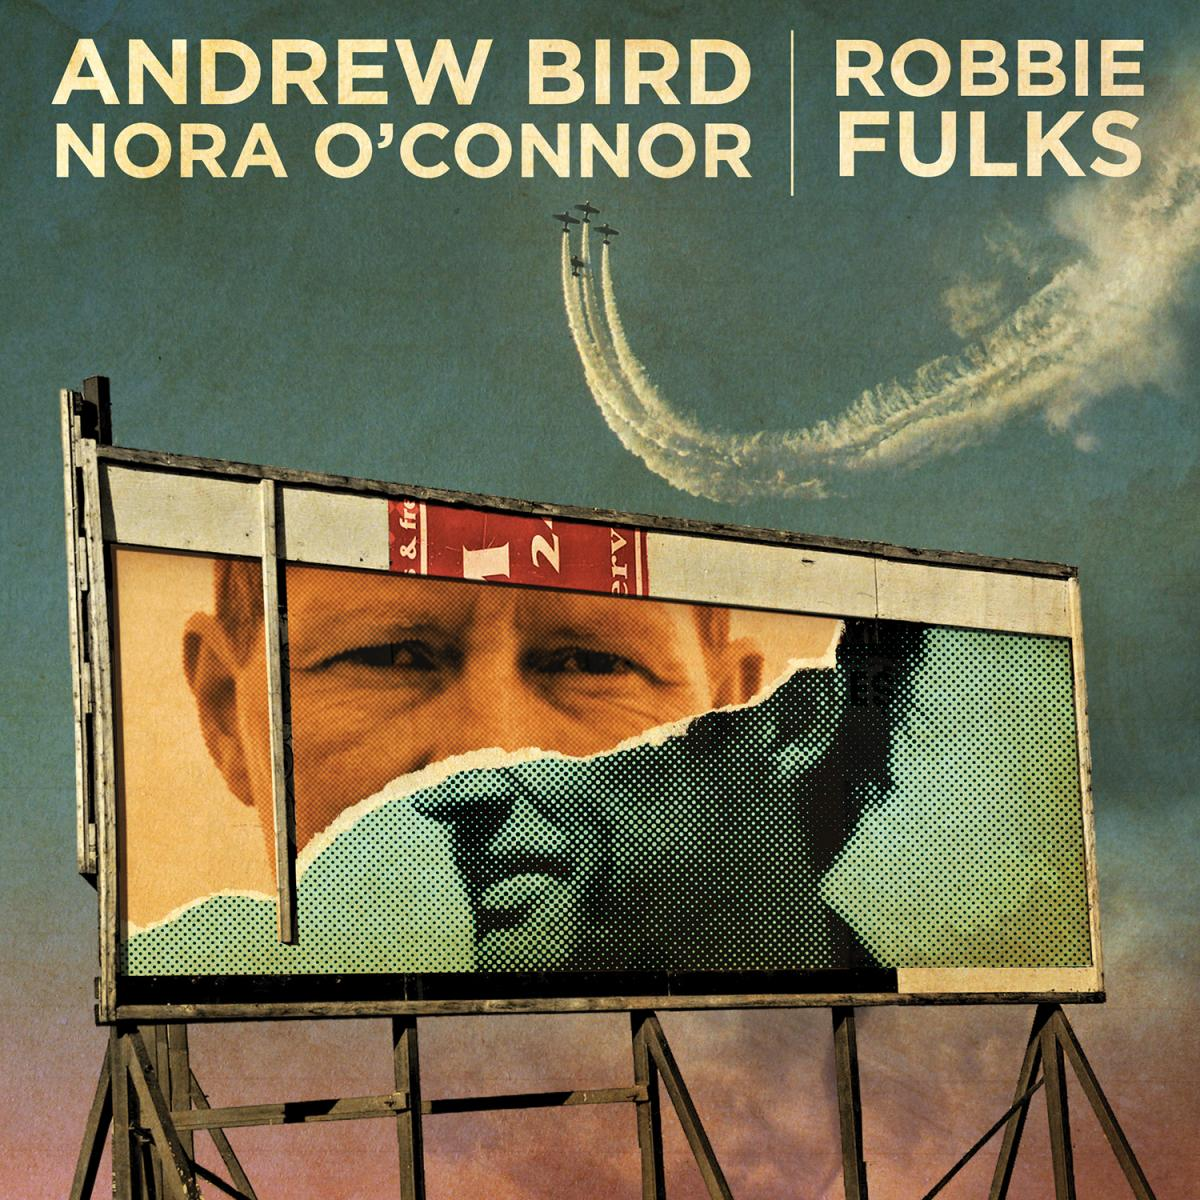 "Andrew Bird Nora O'Connor Robbie Fulks I'll Trade You Money For Wine Core and Rind 7"" single vinyl"